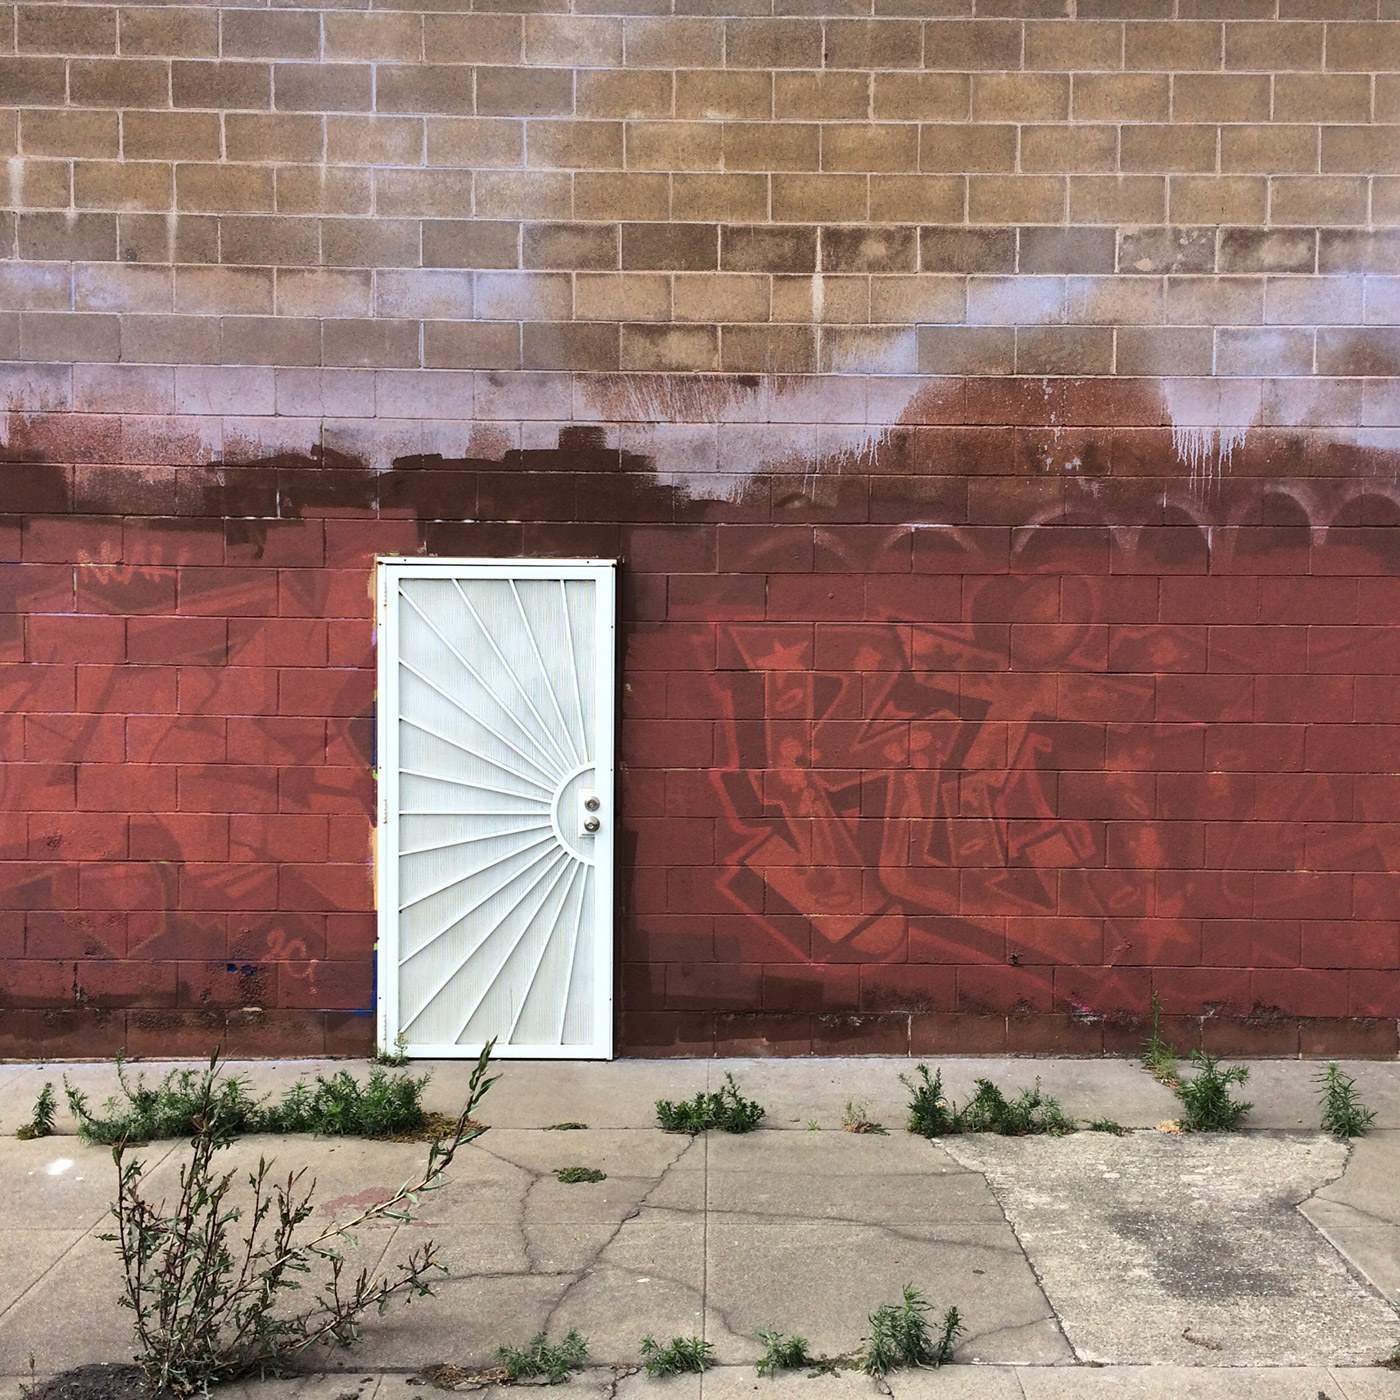 The White Door (East 10th and 23rd Avenue, Oakland, California)